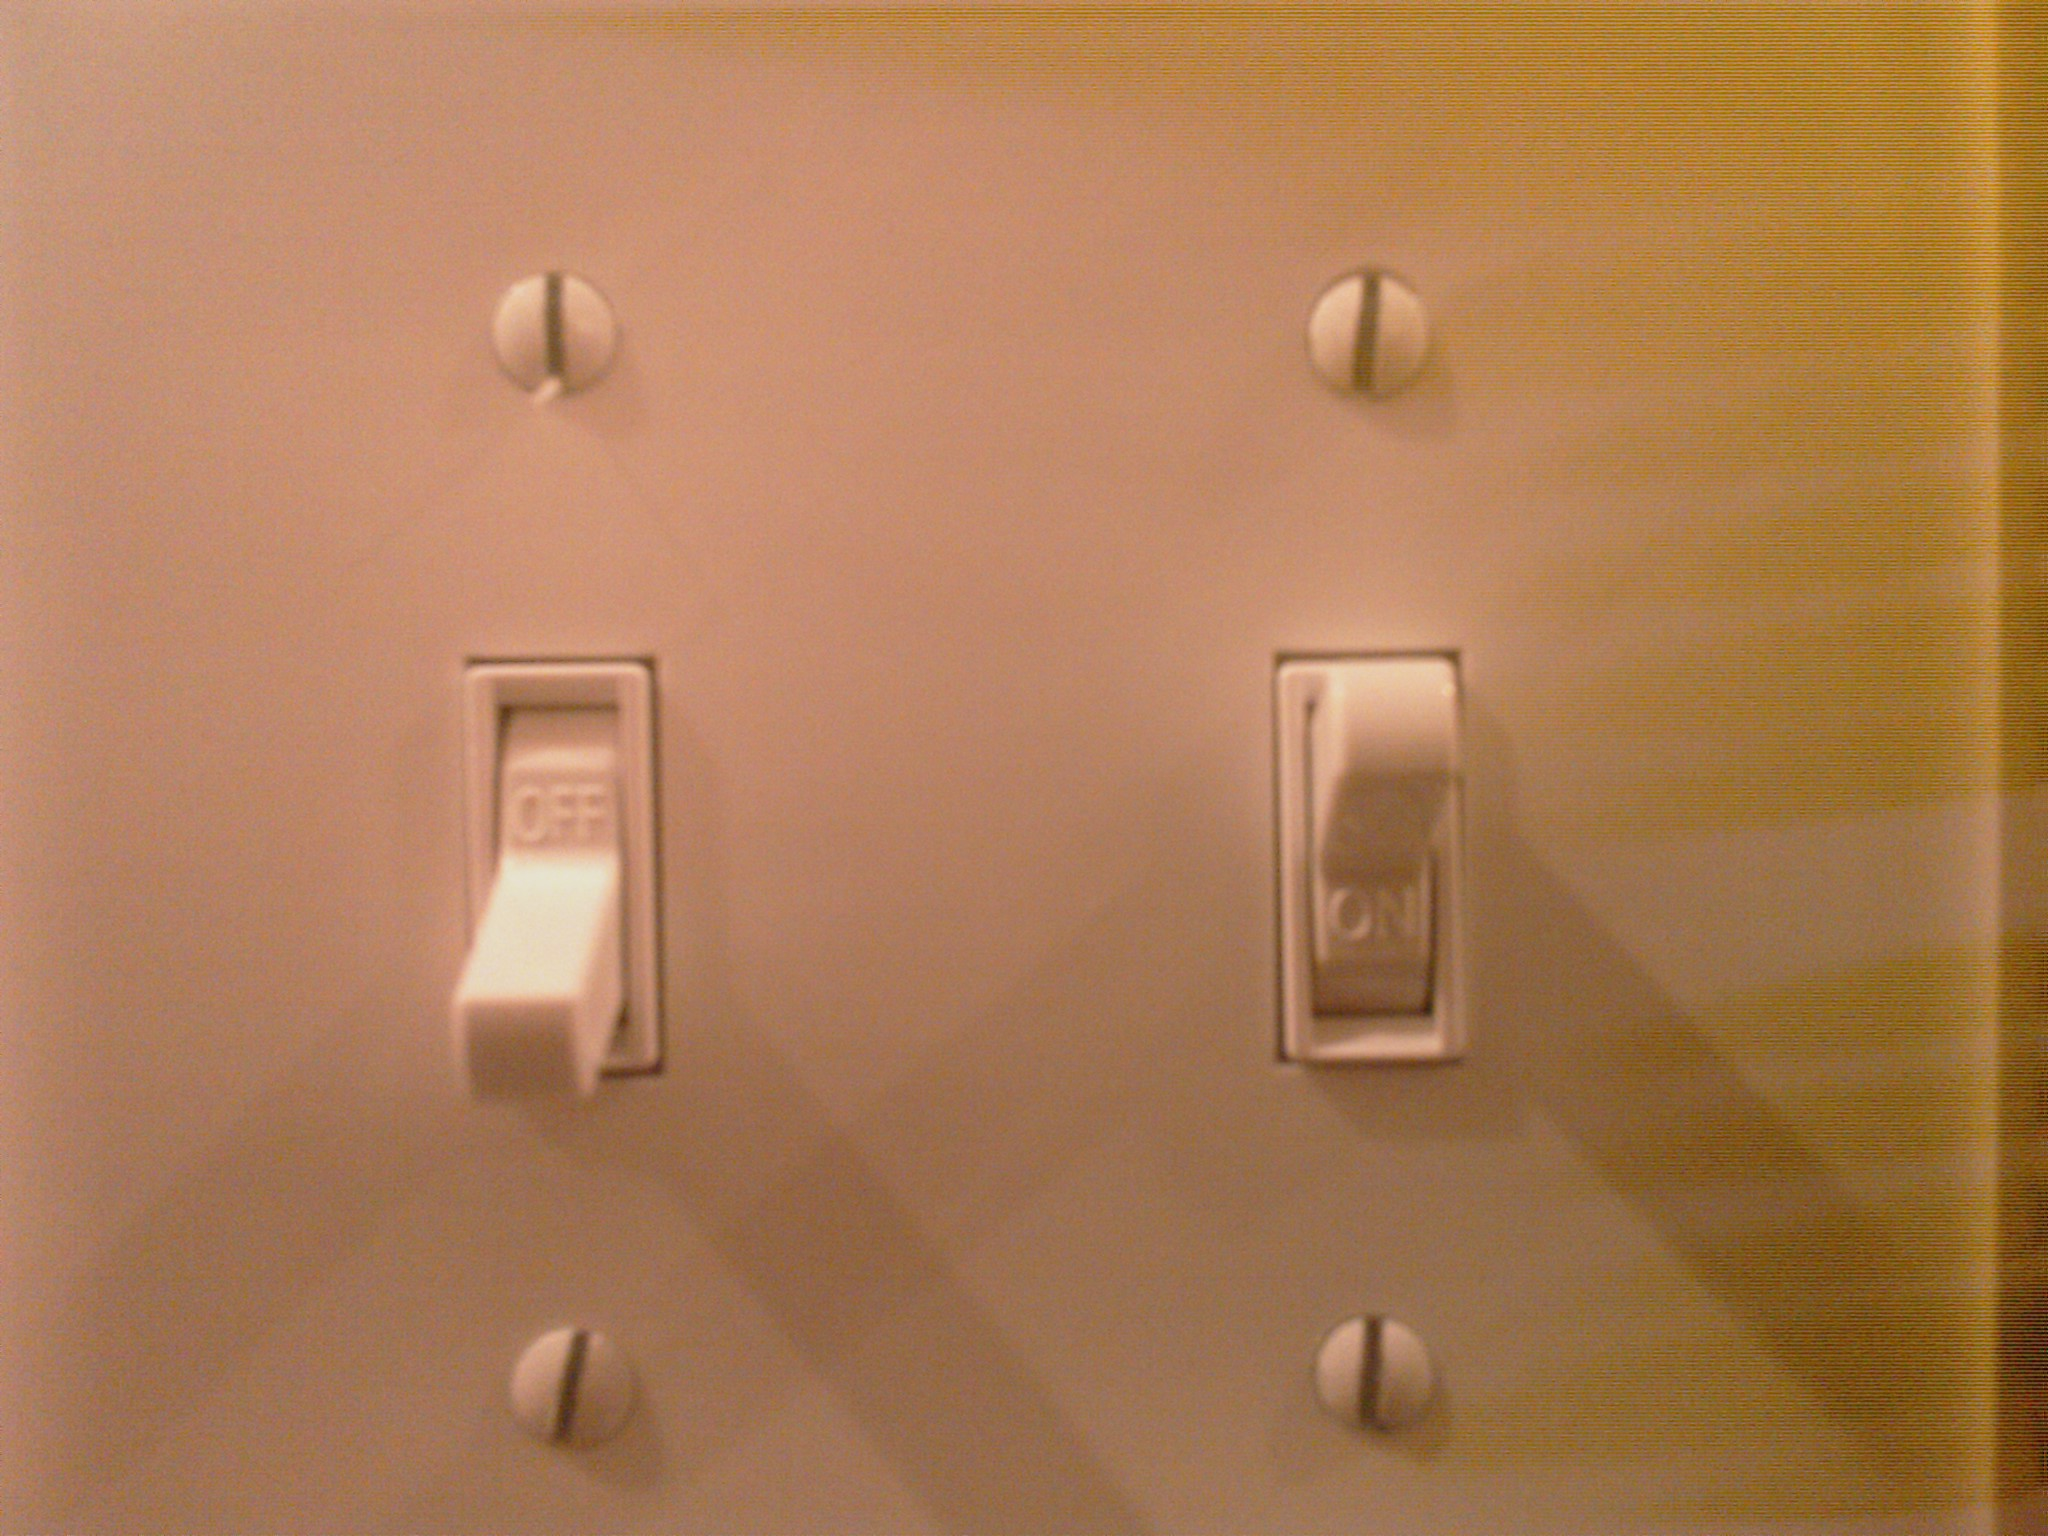 wall switches and light fixtures in a building When building new, the electrician needs to install all the wiring, junction boxes, and switches before the drywall goes in and direct contractors to leave spaces for the lighting as needed, which adds to labor hours and final costs.